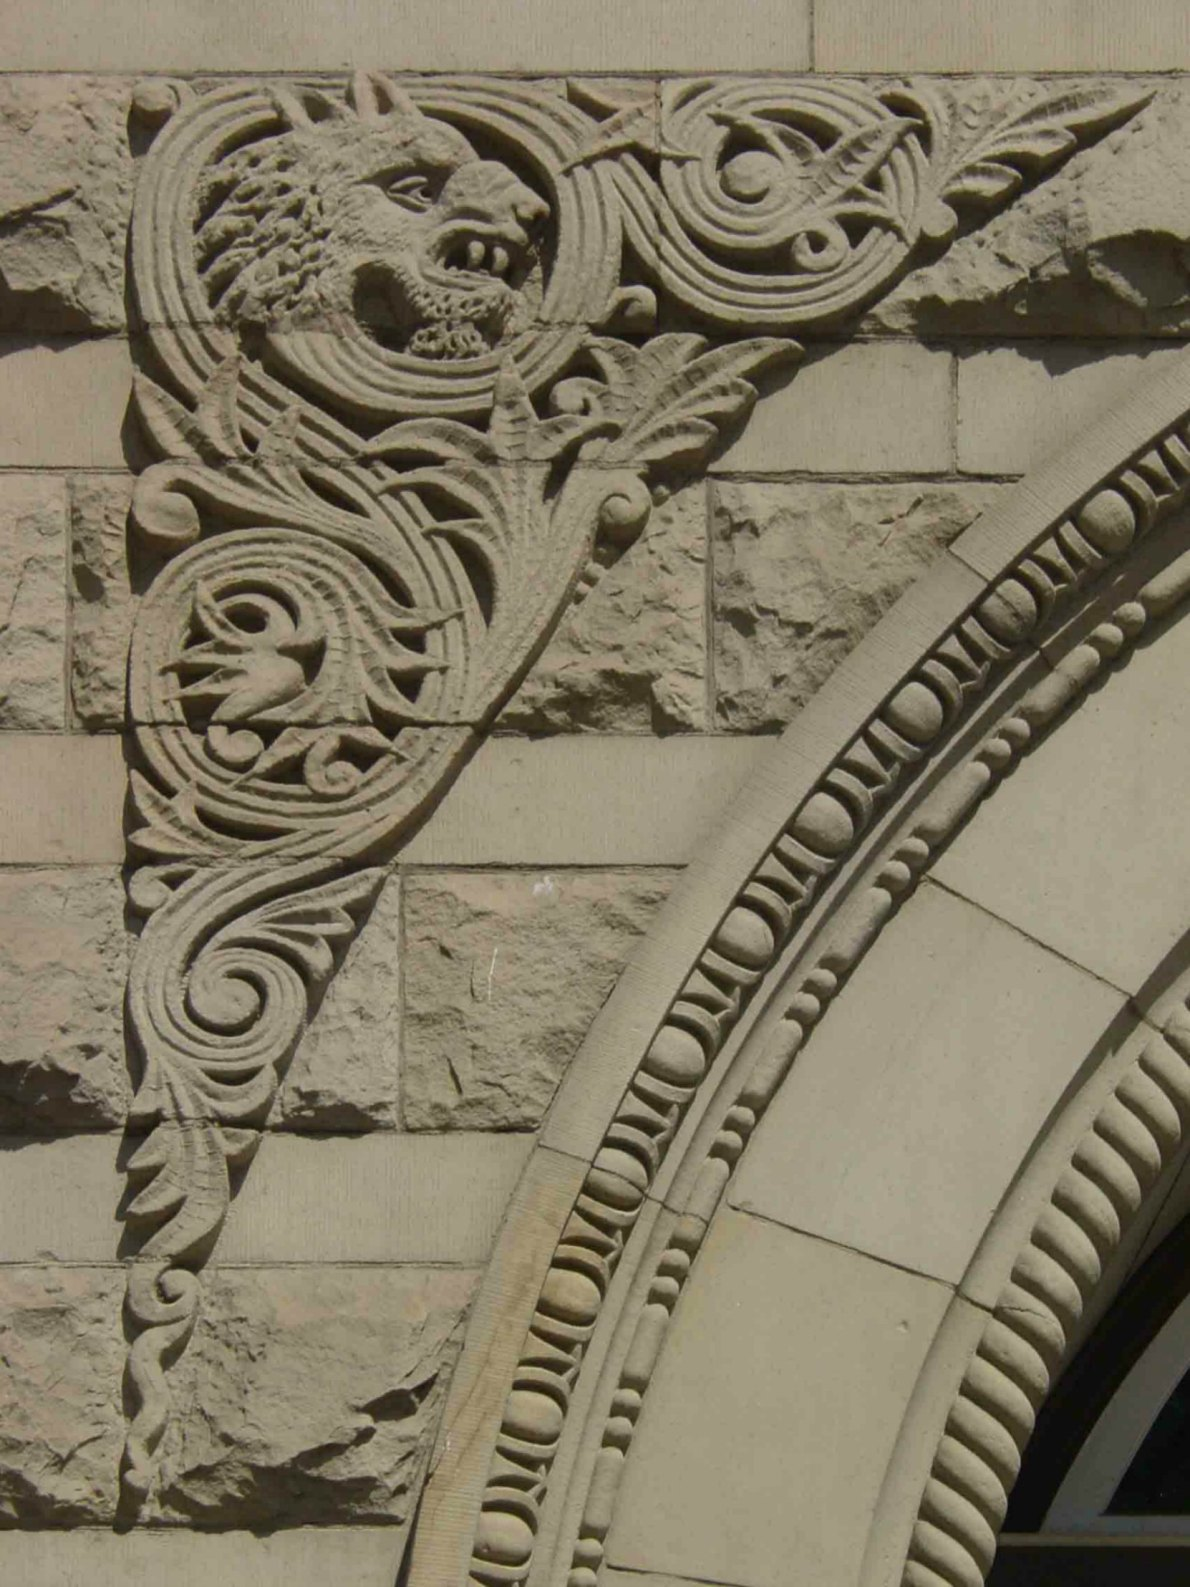 Exterior decorative detail on the Yates Street entrance of the former Carnegie Library, 794 Yates Street.